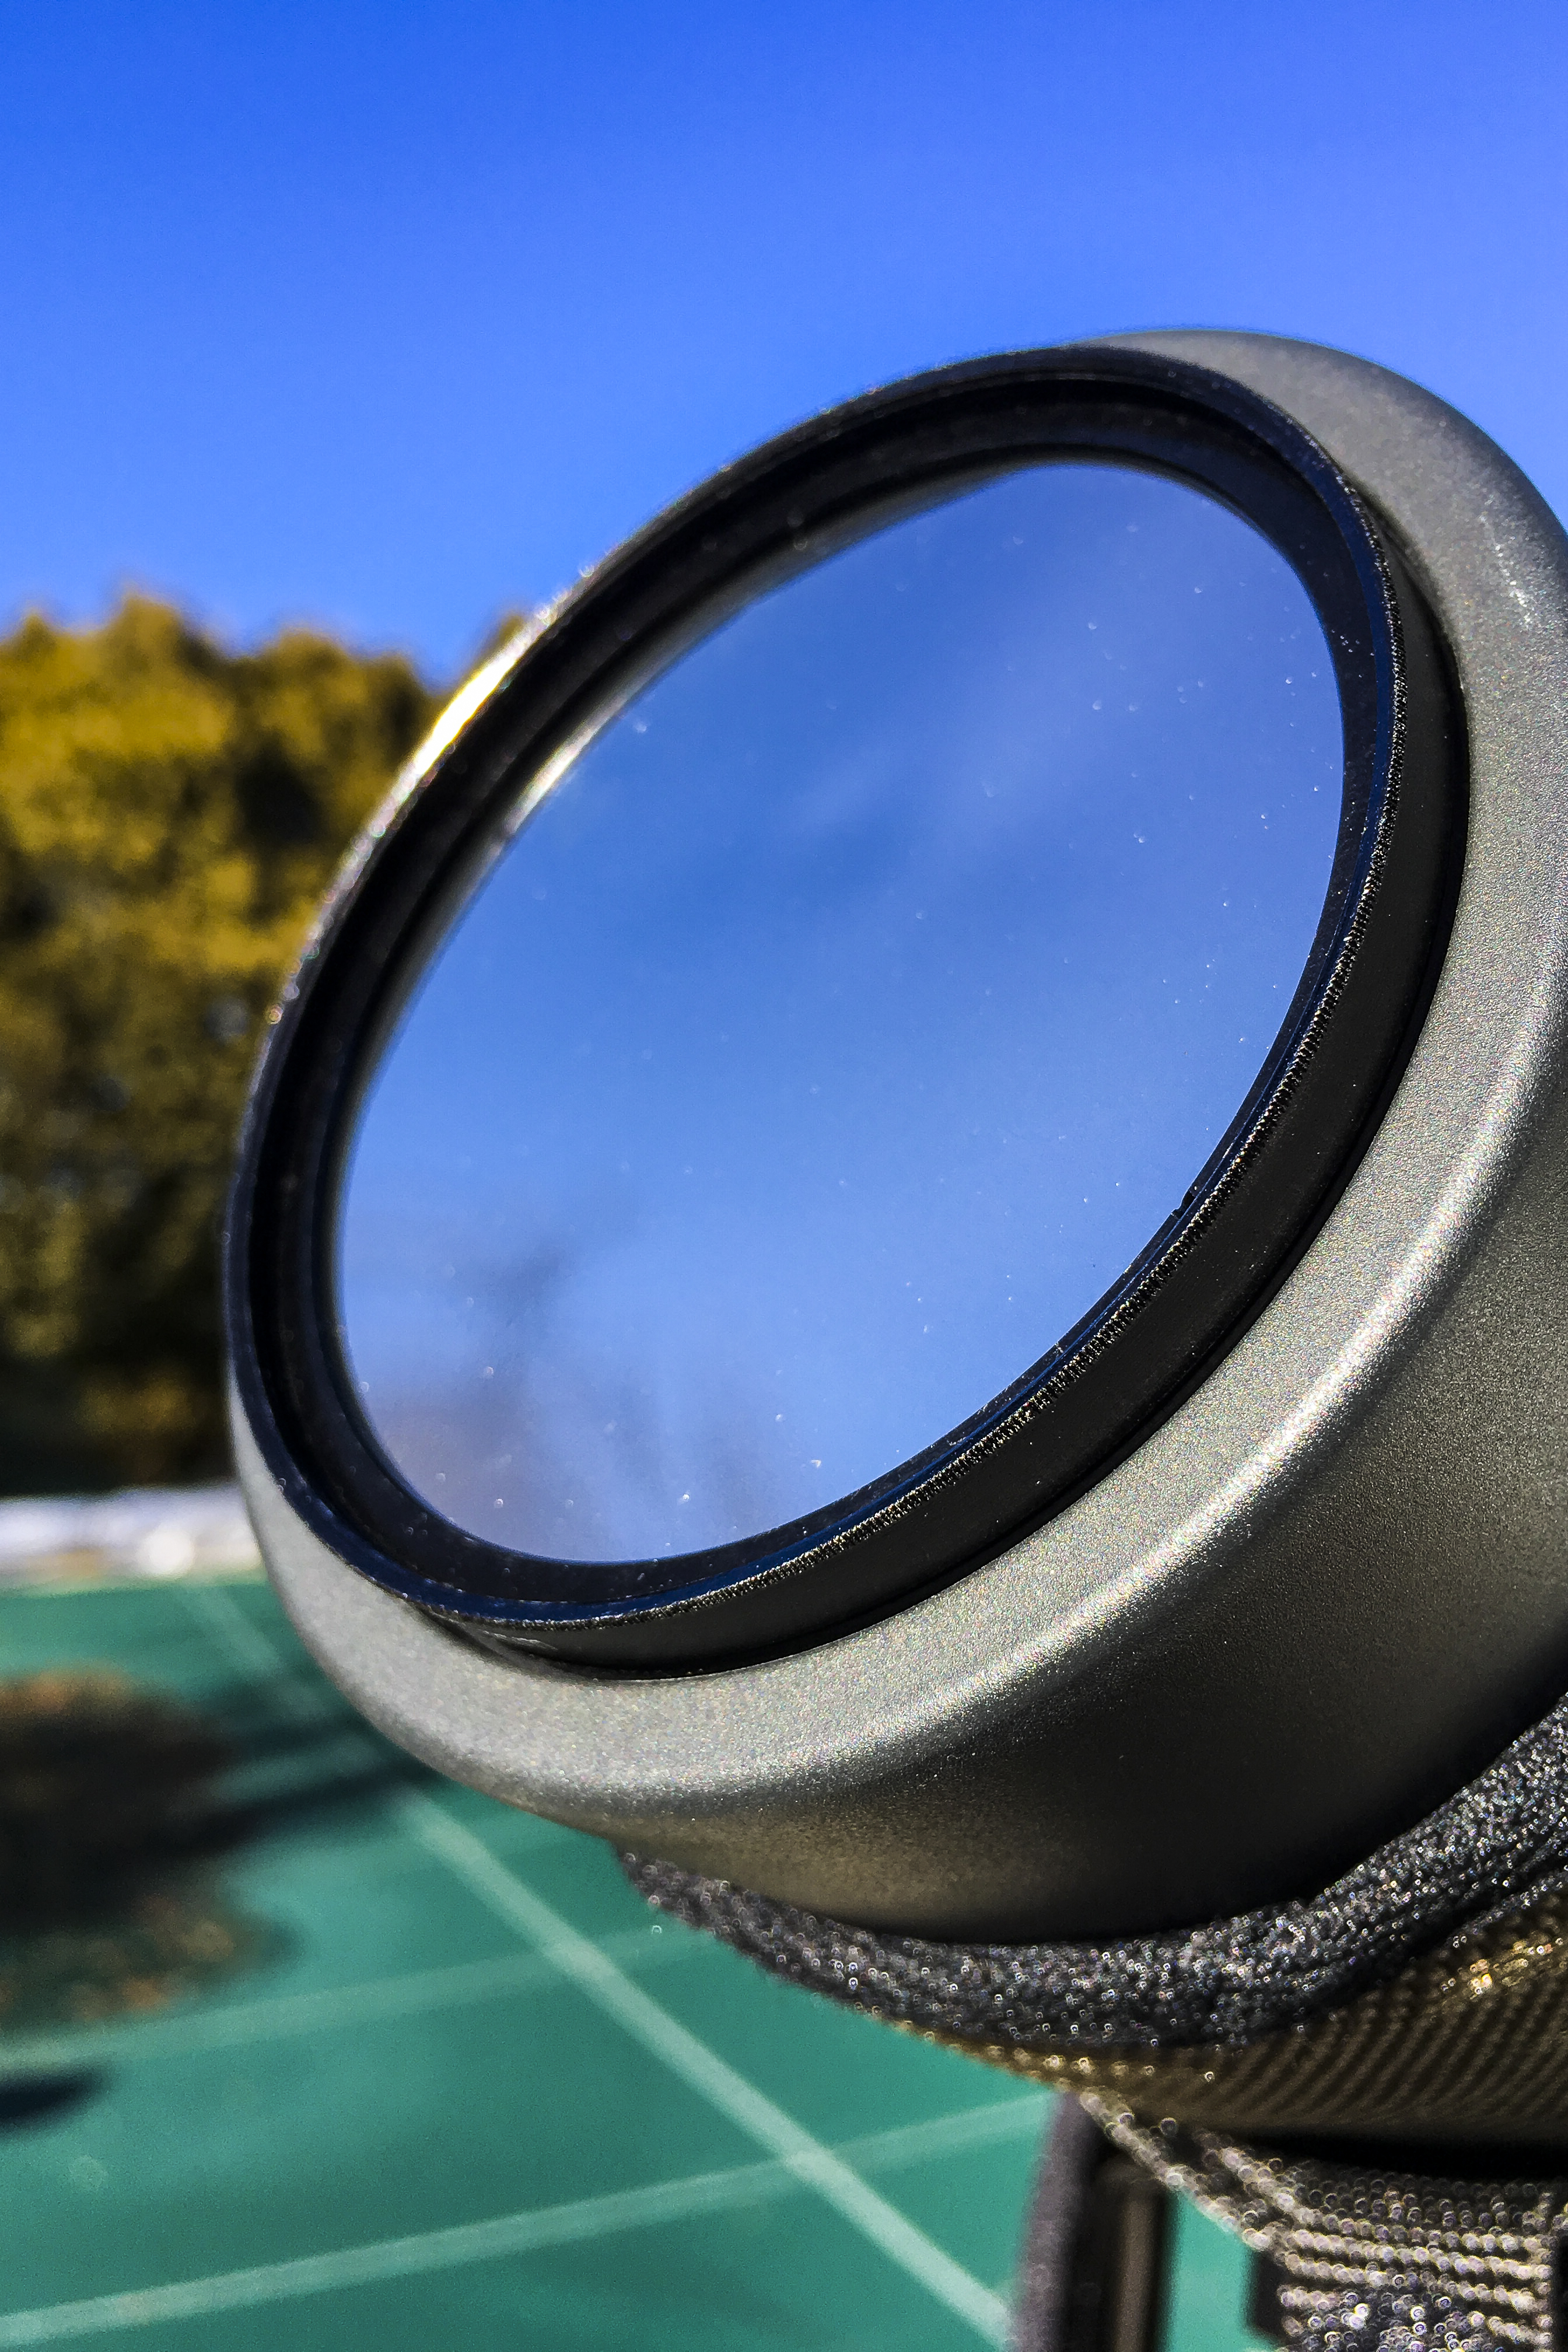 A Mylar filter on the front of a Leica APO Televid 77 spotting scope